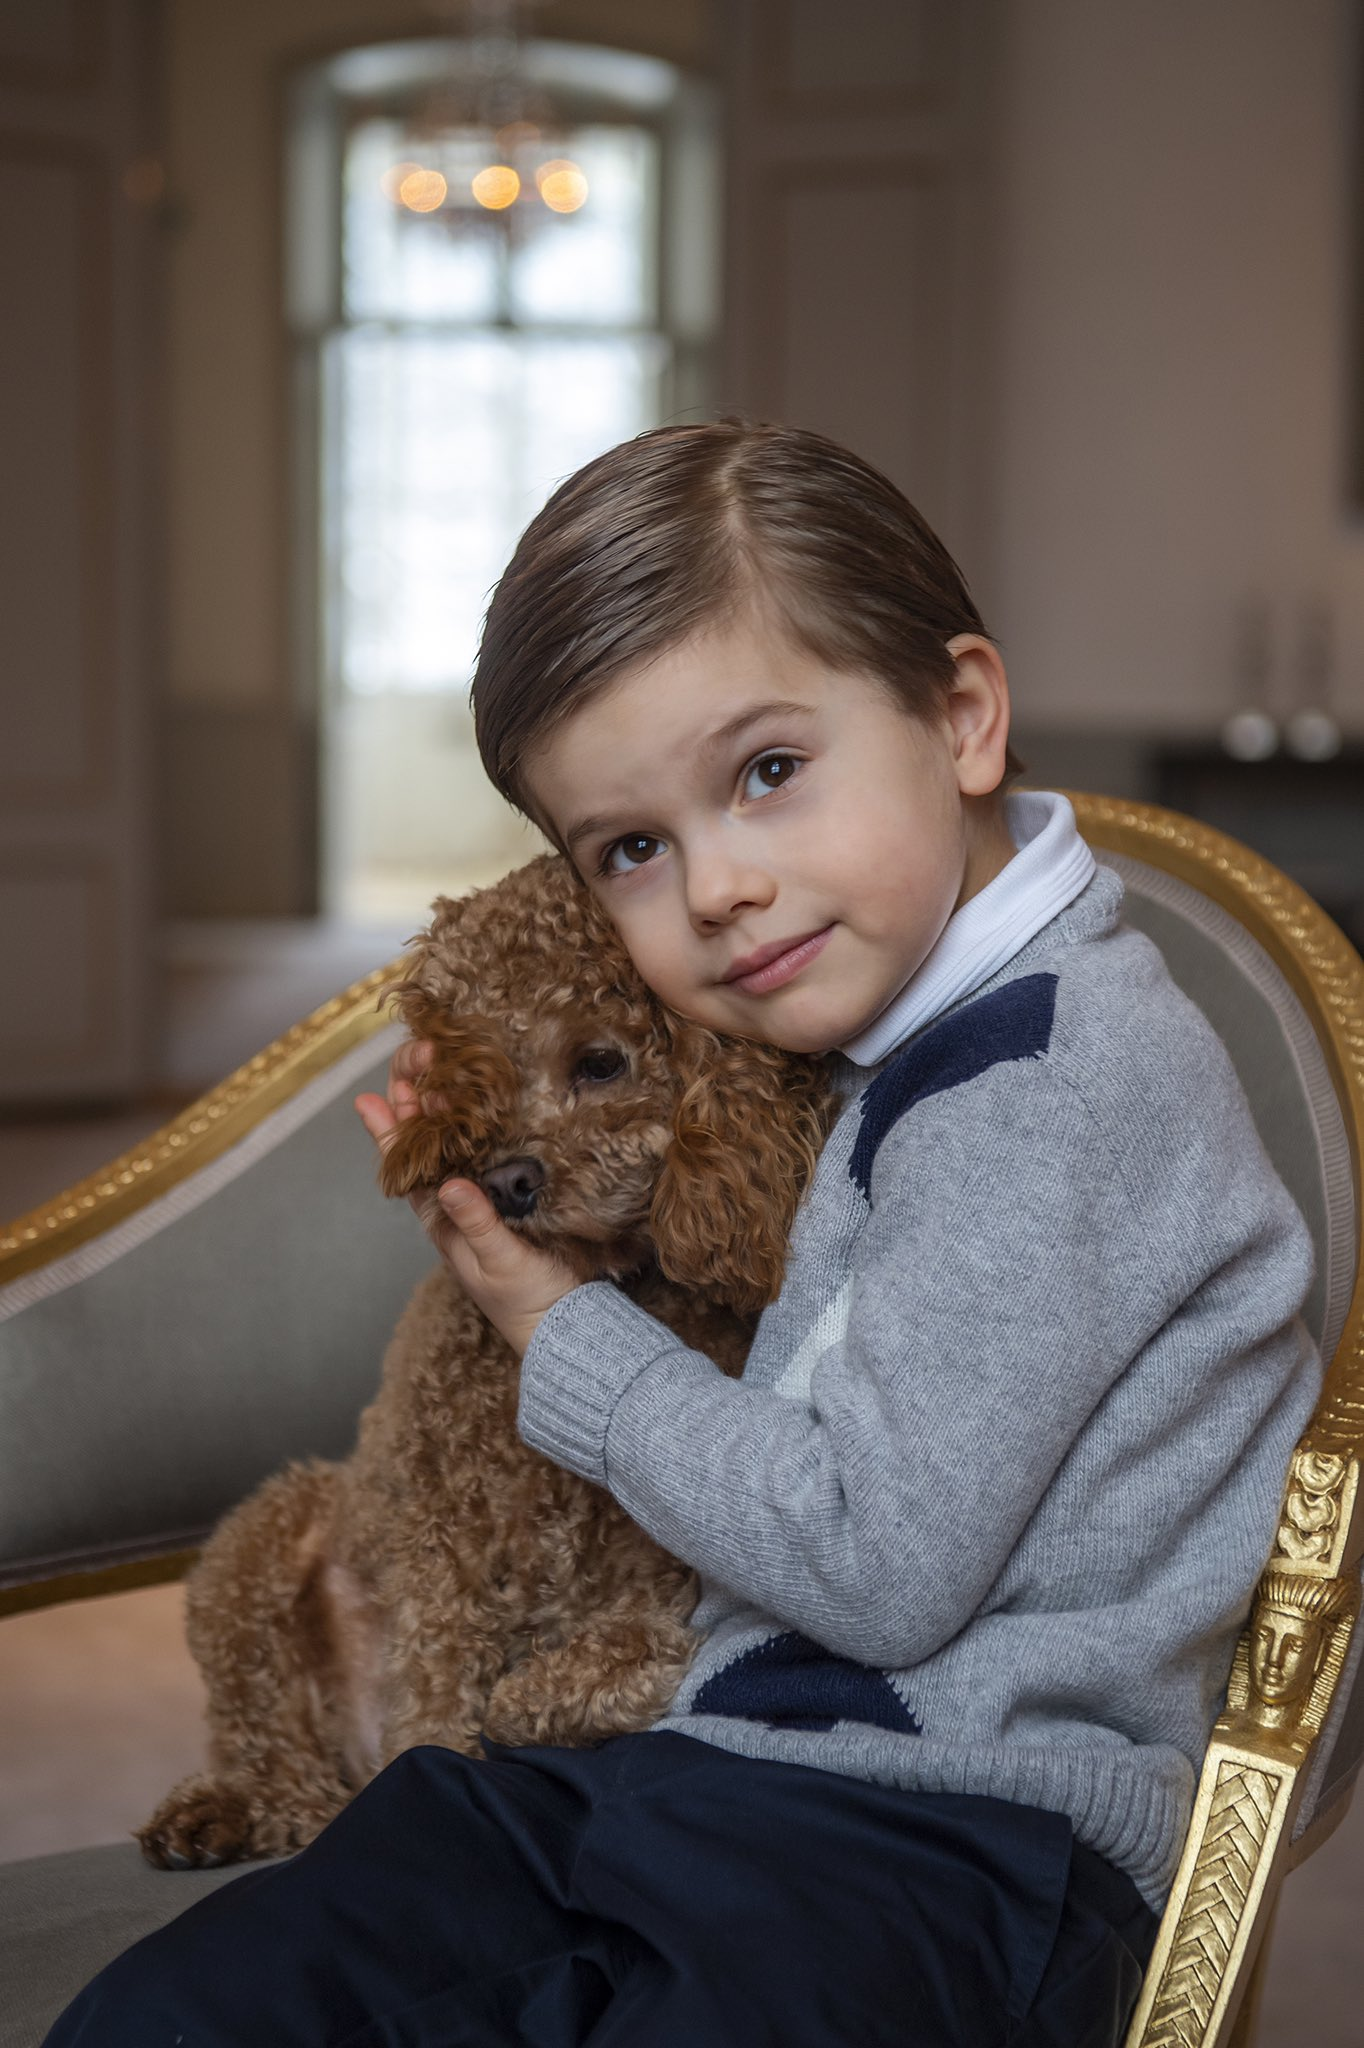 Prince Oscar's birthday Pictures